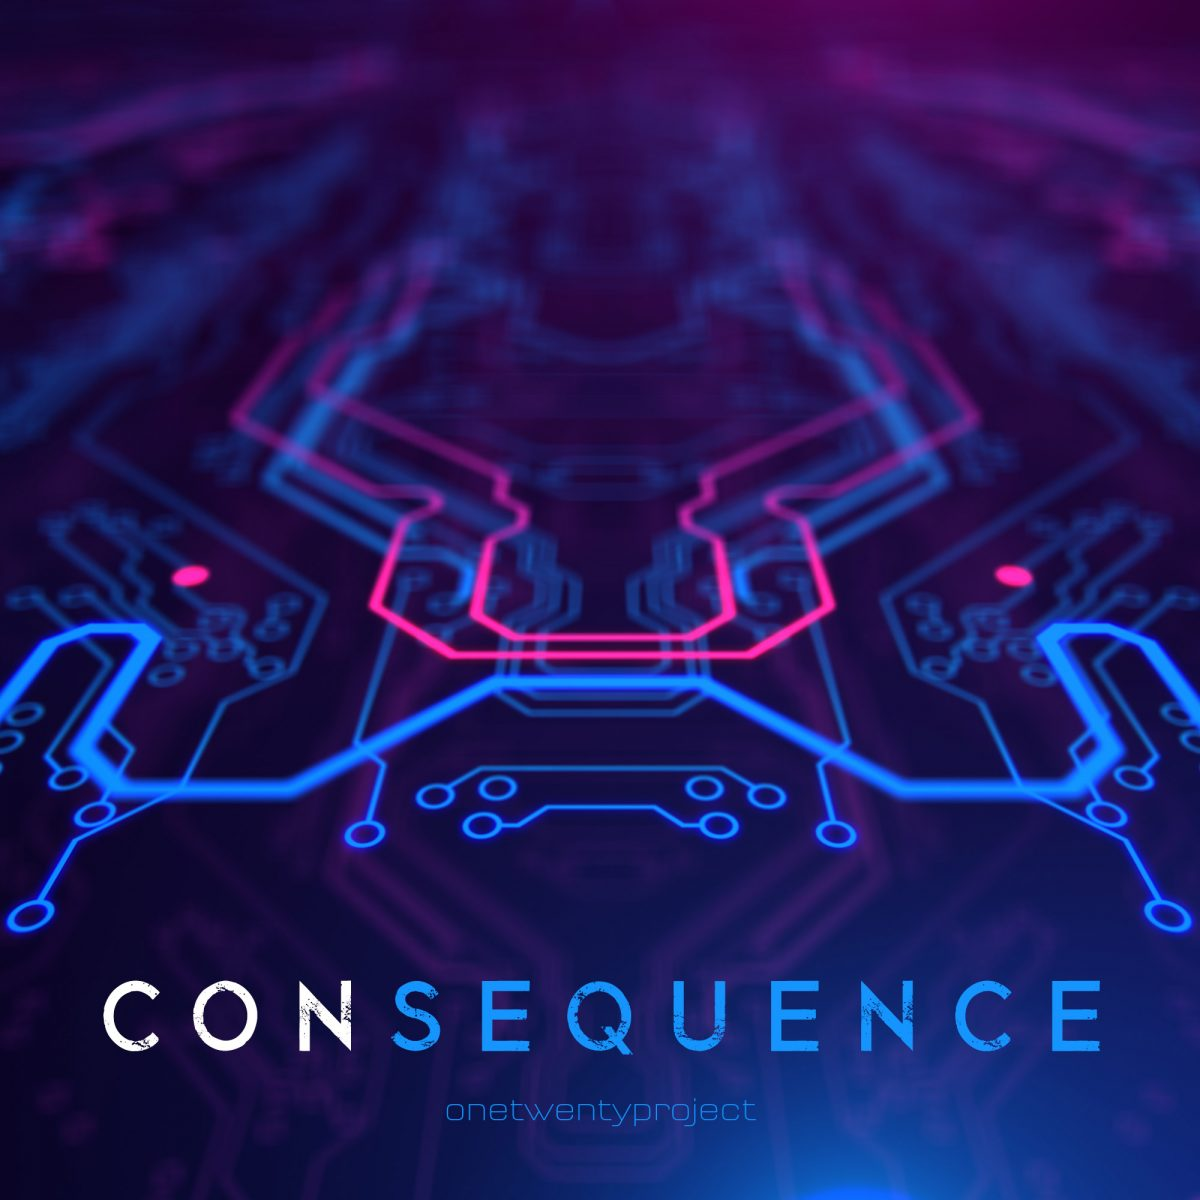 Con-Sequence - New Demo Track by 120 Project